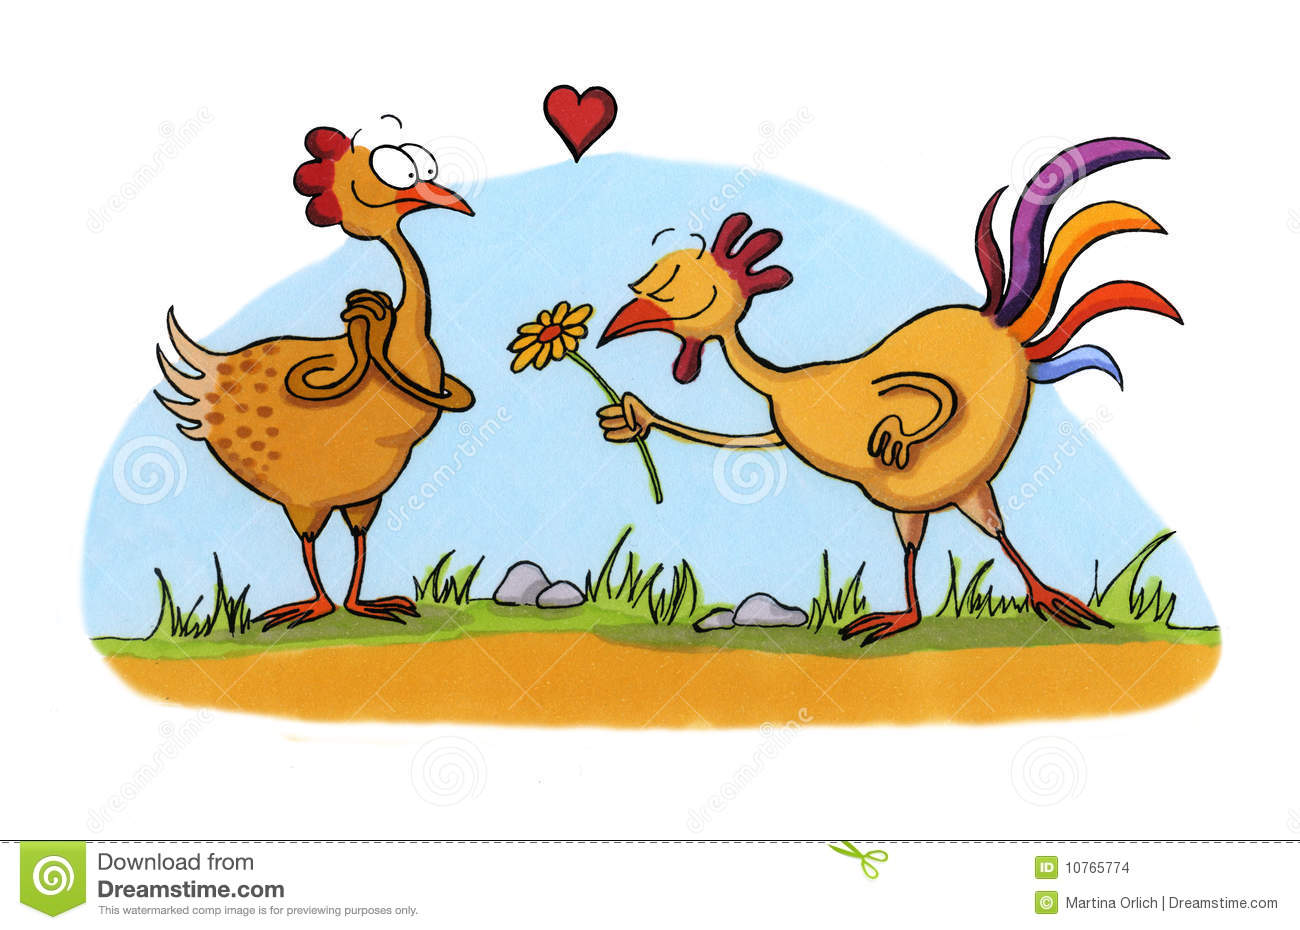 Cartoon Drawing Of Two Chicken In Love Stock Images - Image: 10765774